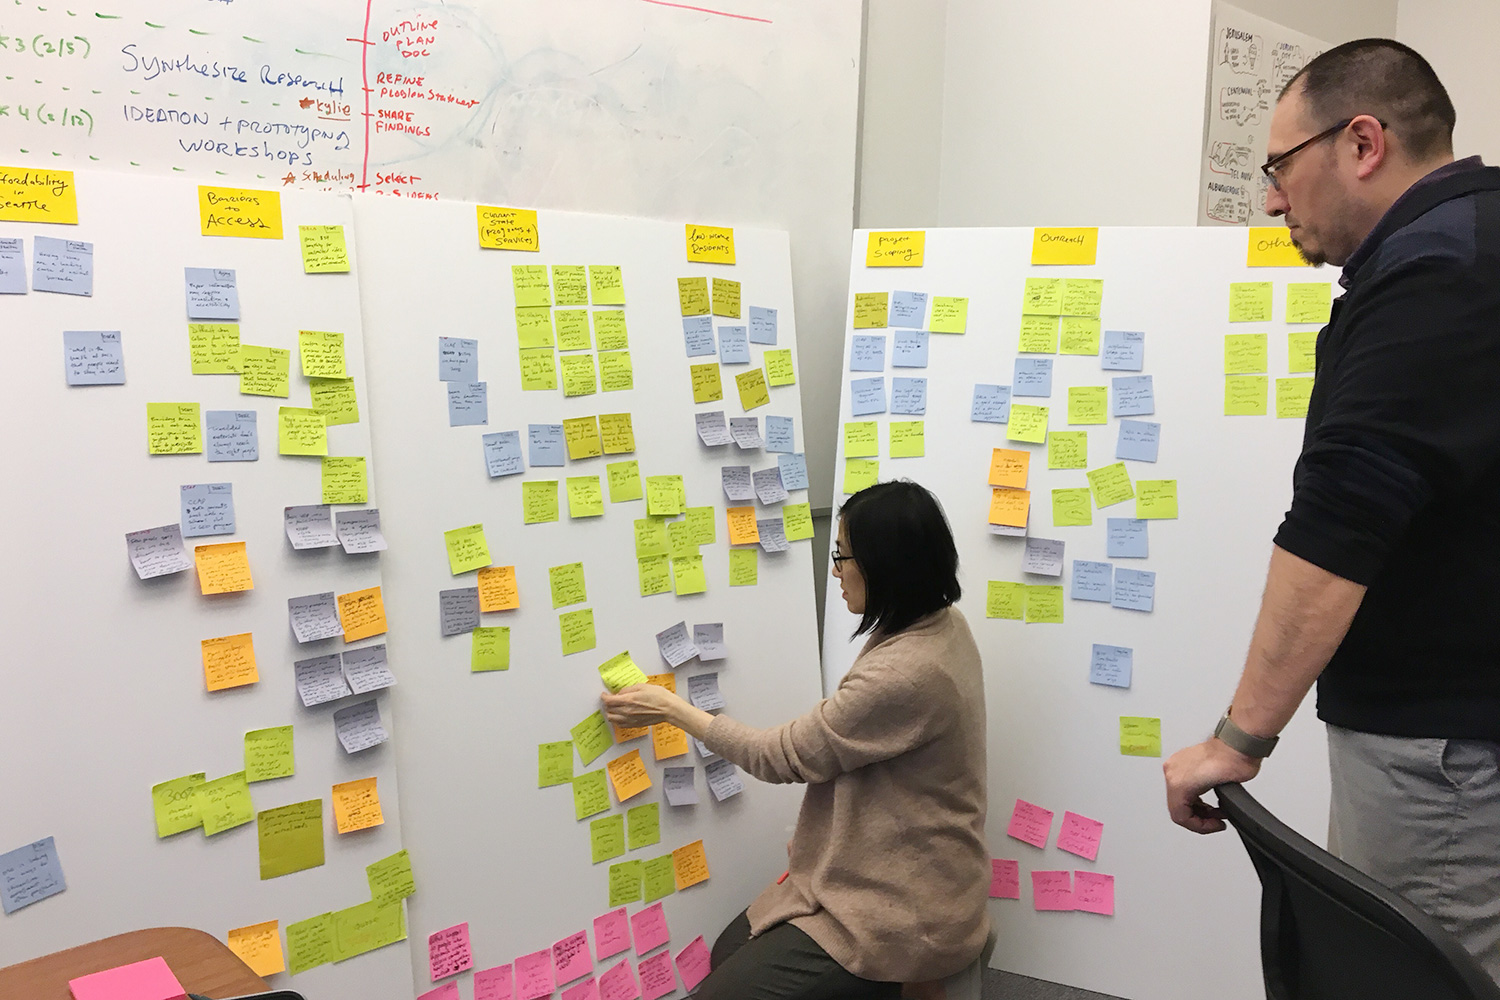 Synthesizing research with Post-it notes